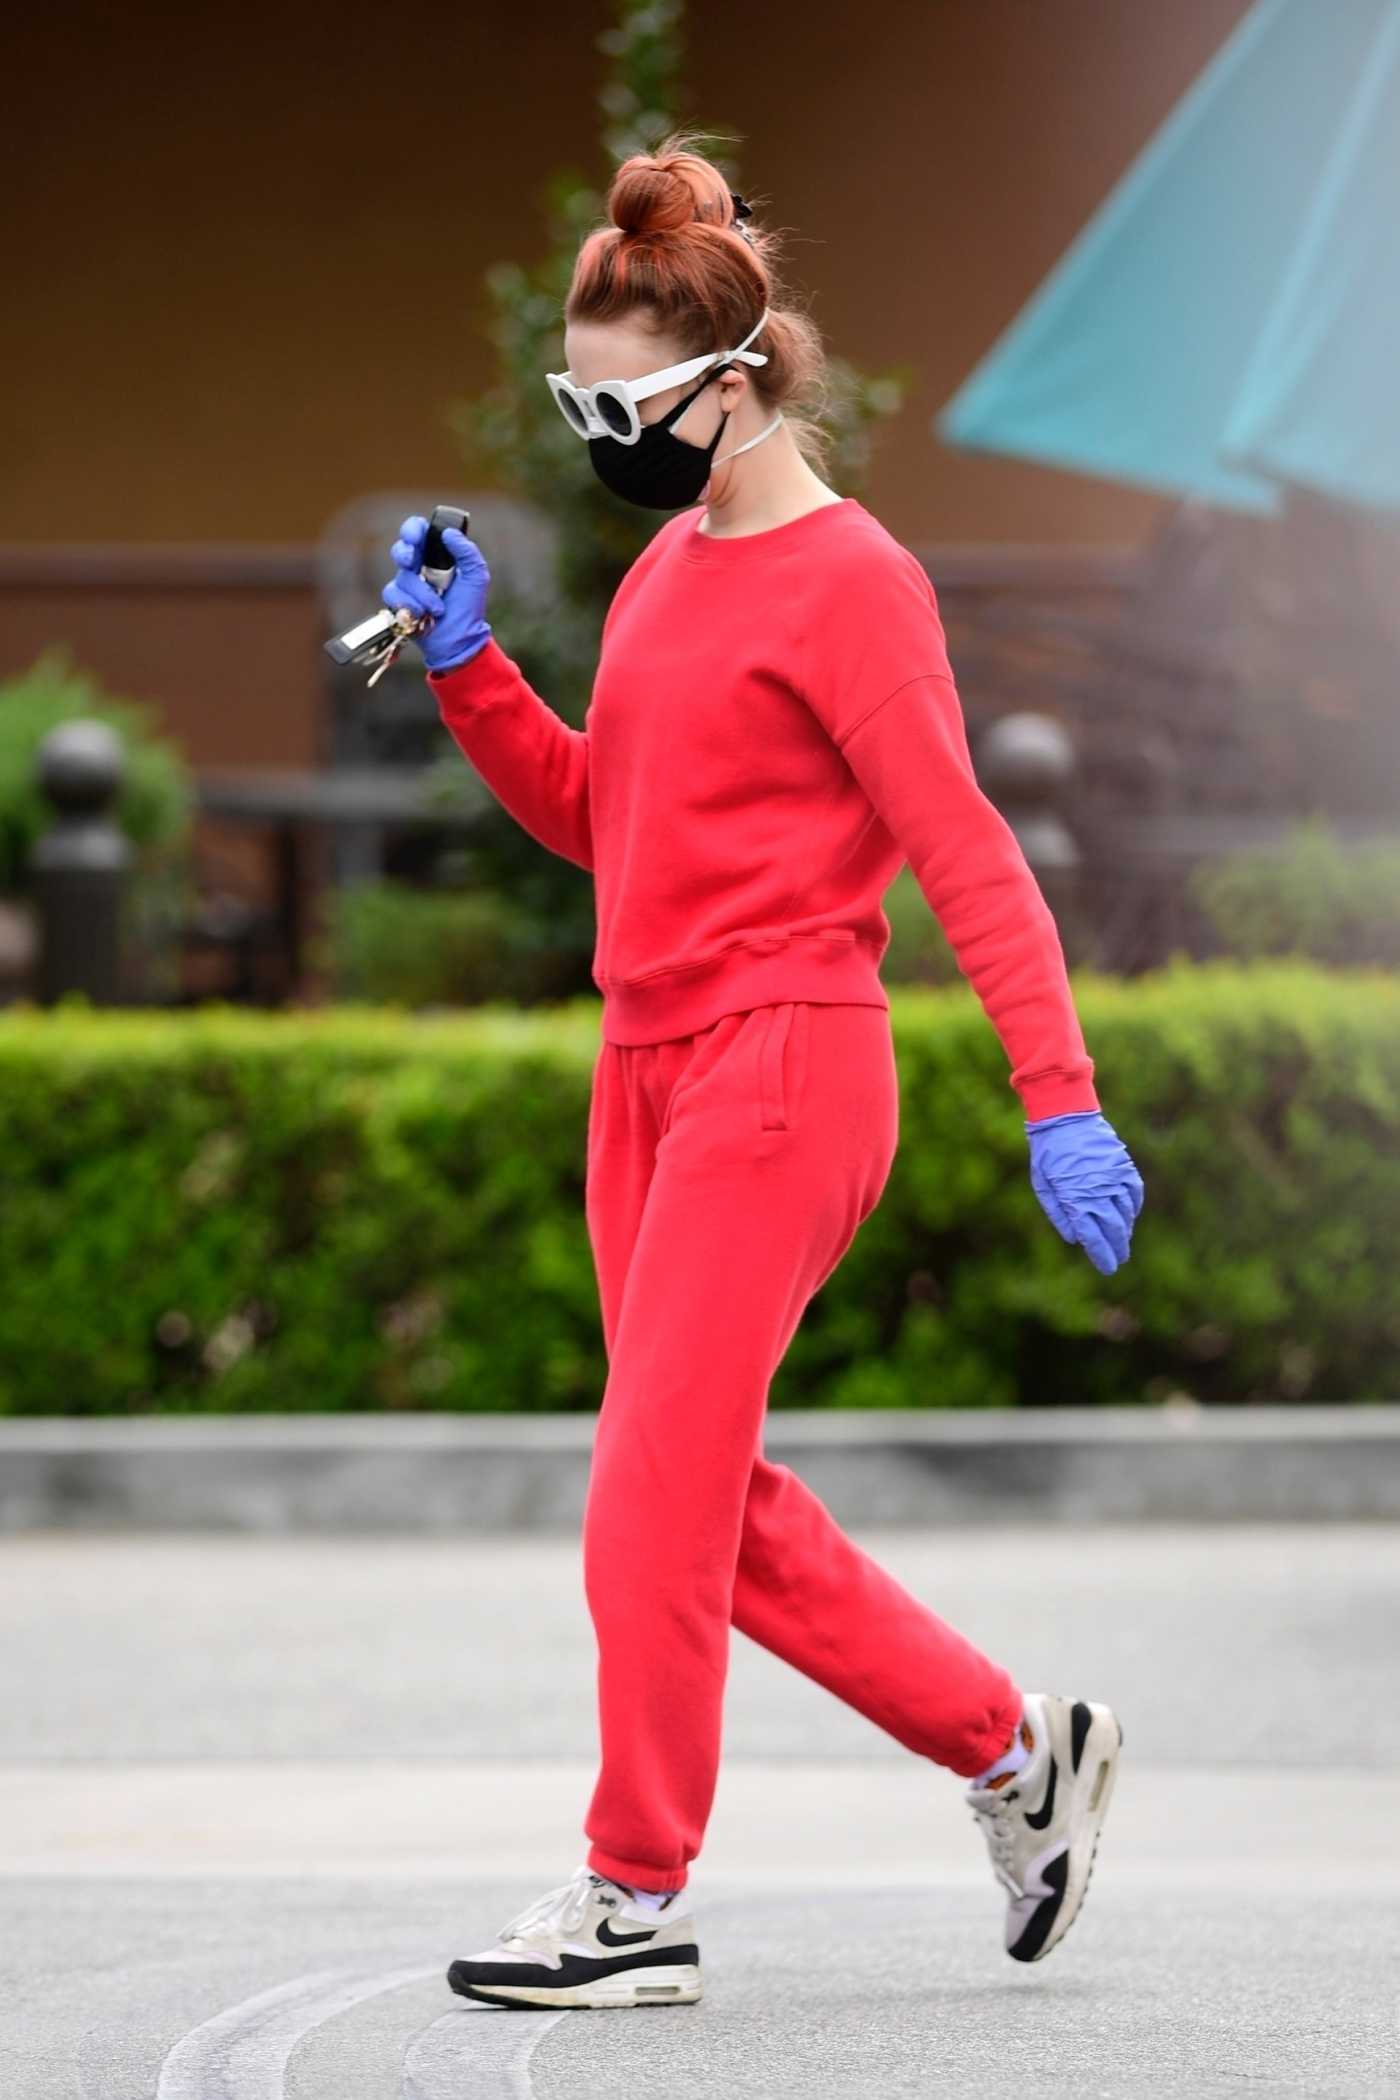 Alessandra Torresani in a Red Sweatsuit Goes Grocery Shopping During the COVID-19 Lockdown in Los Angeles 04/20/2020